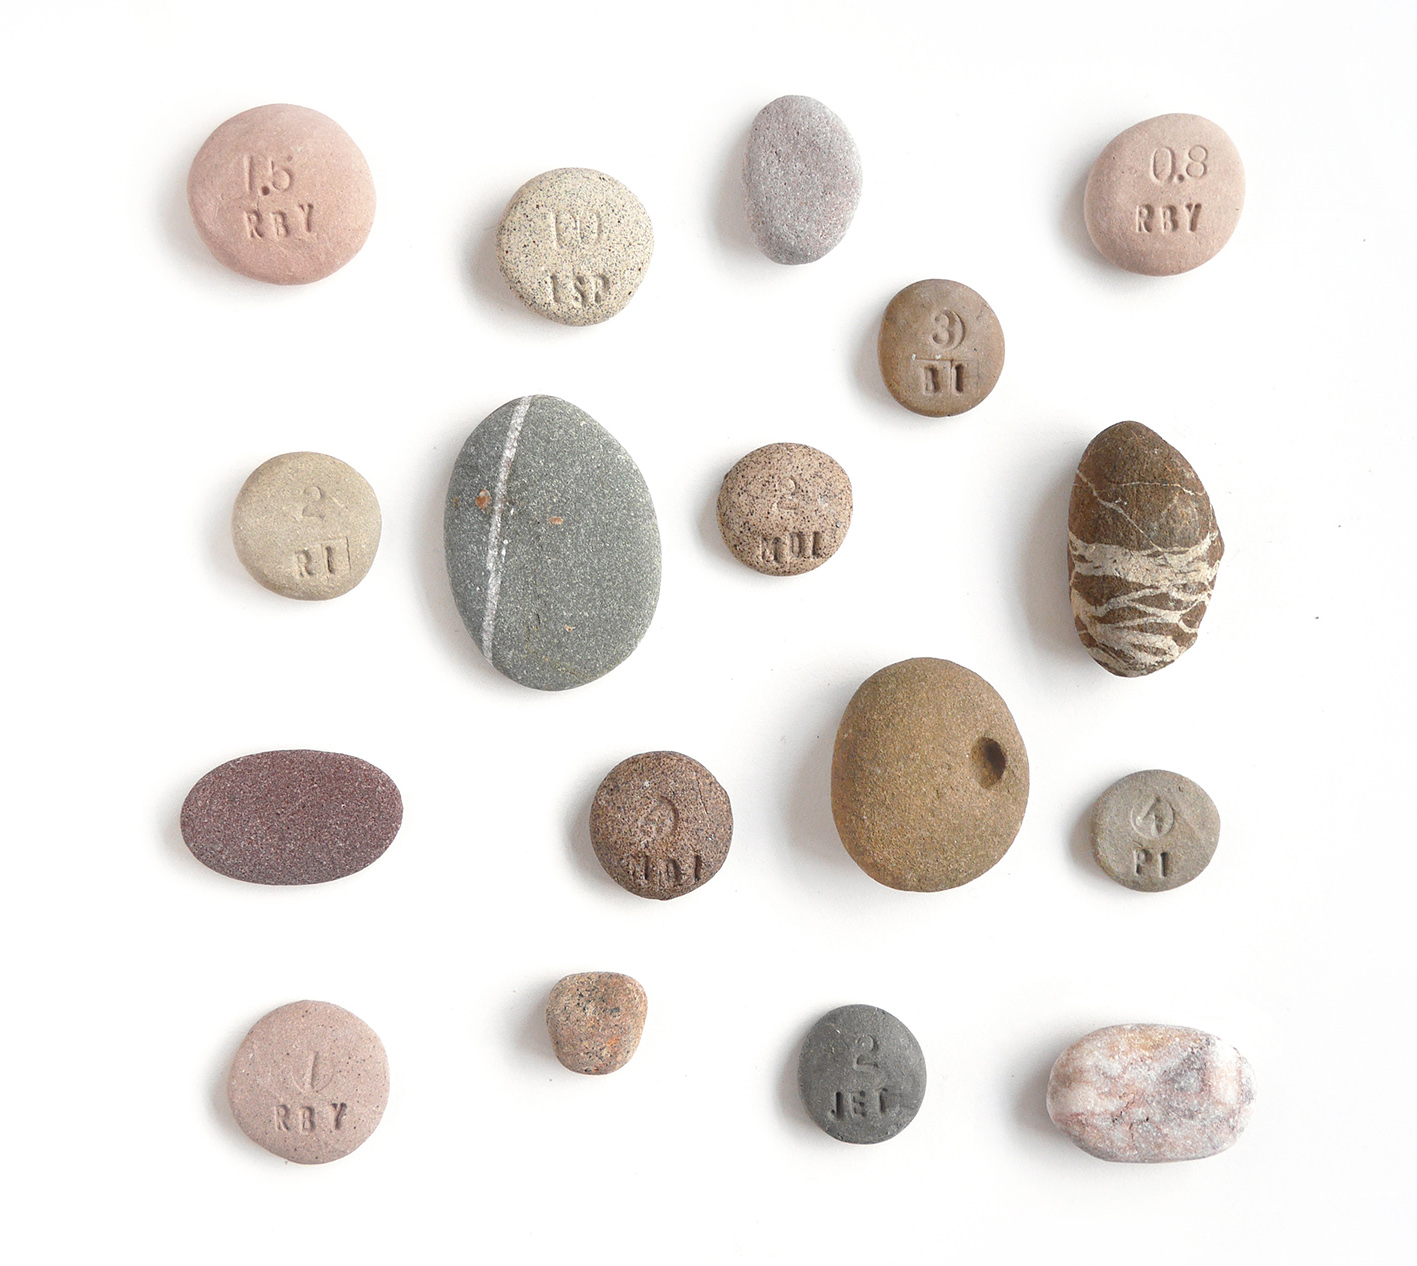 Collected pebbles and a few of my coloured clay body tests for rock and pebble pots